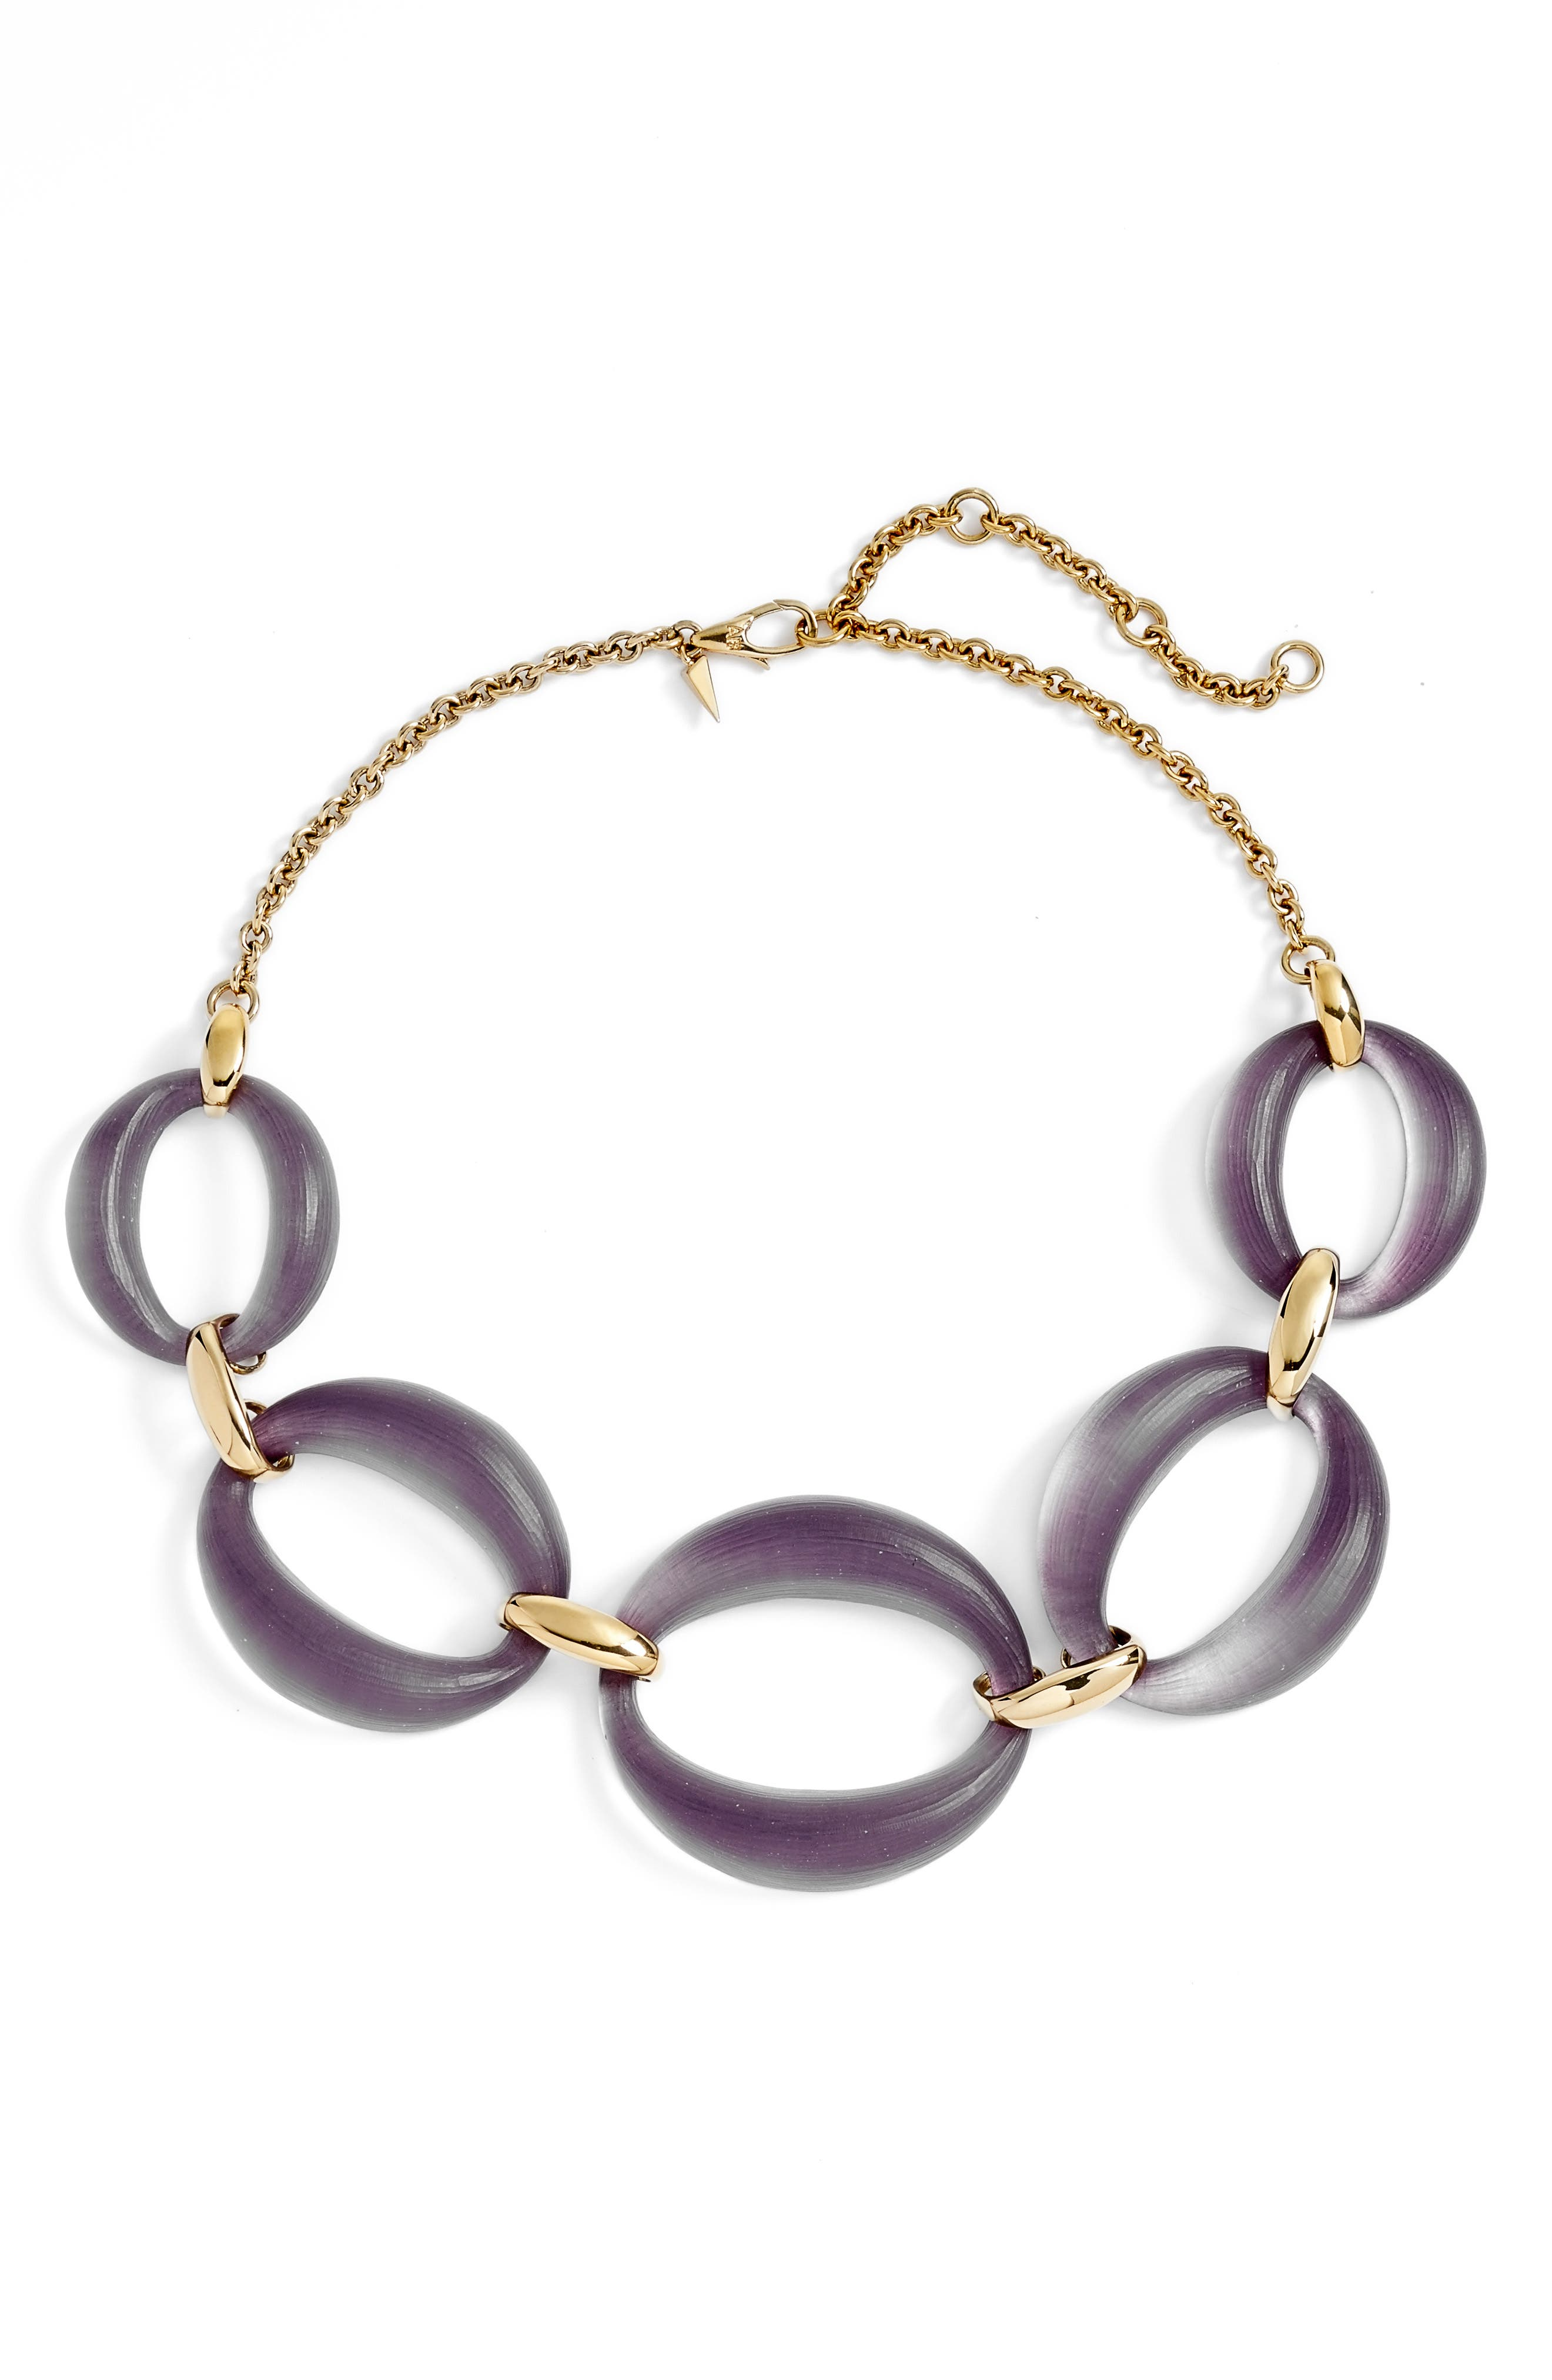 Alternate Image 1 Selected - Alexis Bittar Large Lucite® Link Frontal Necklace